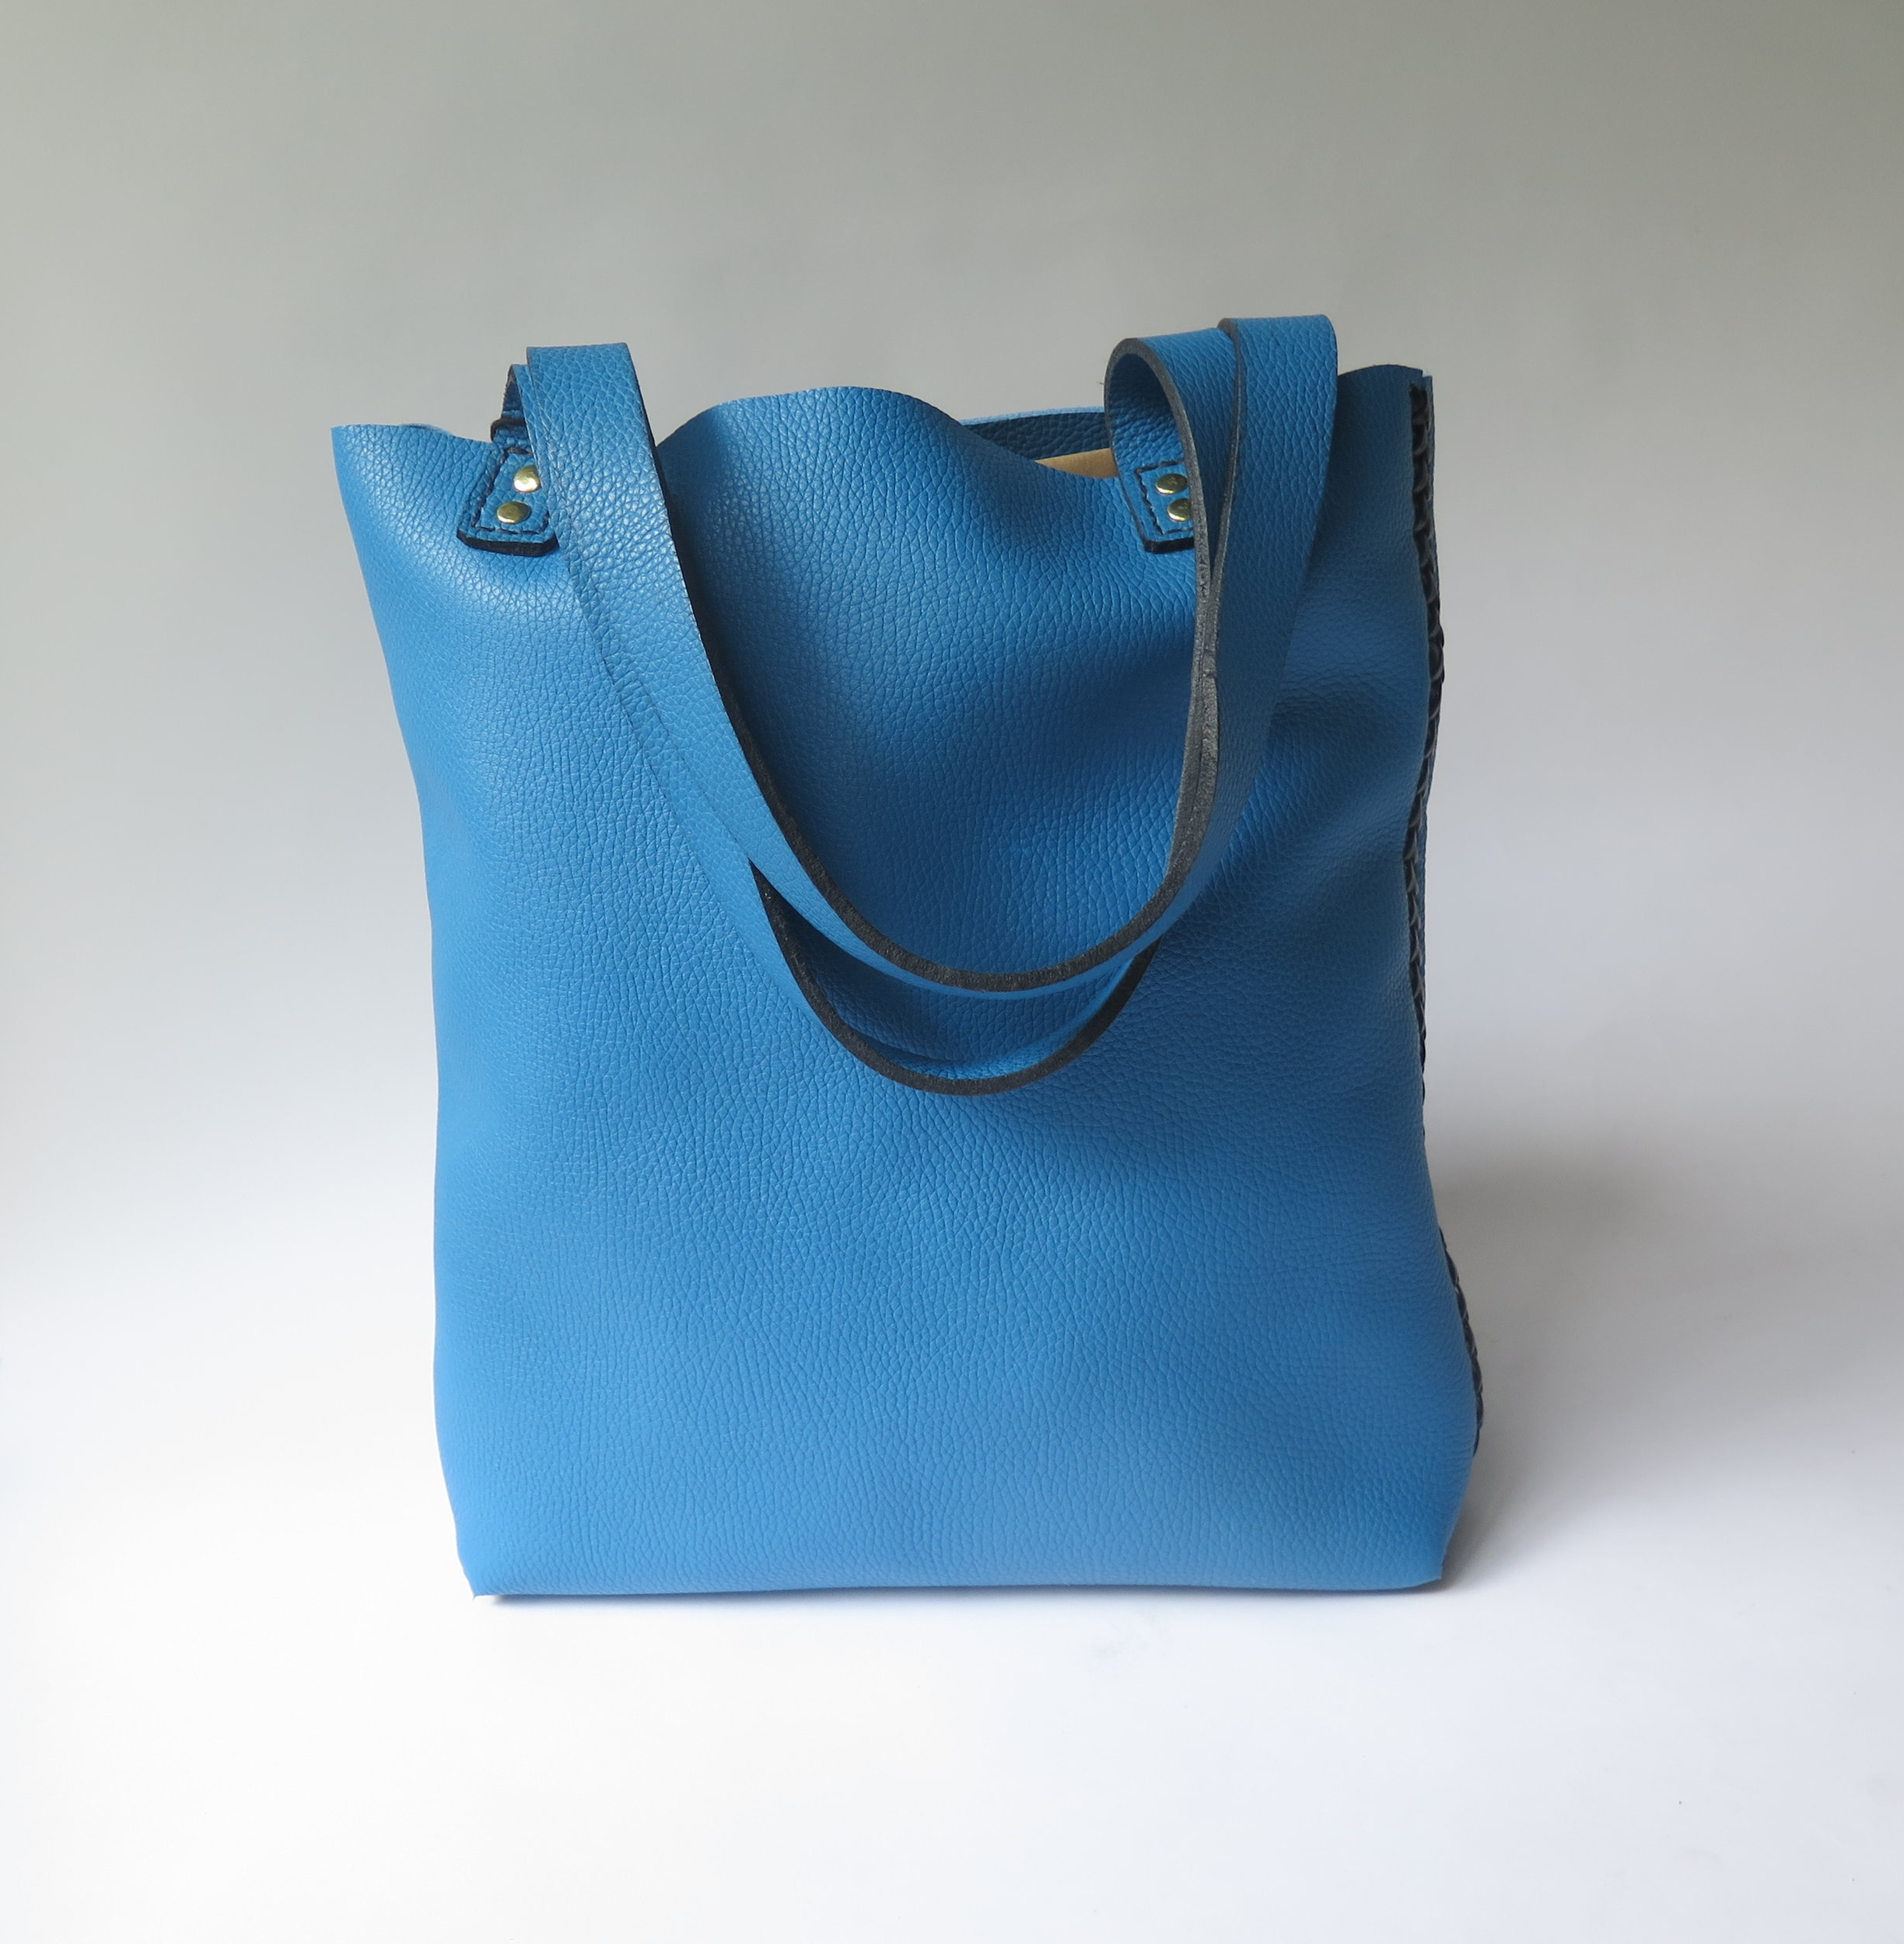 mary-savel-leather-tote-blue-with-black-lacing.JPG